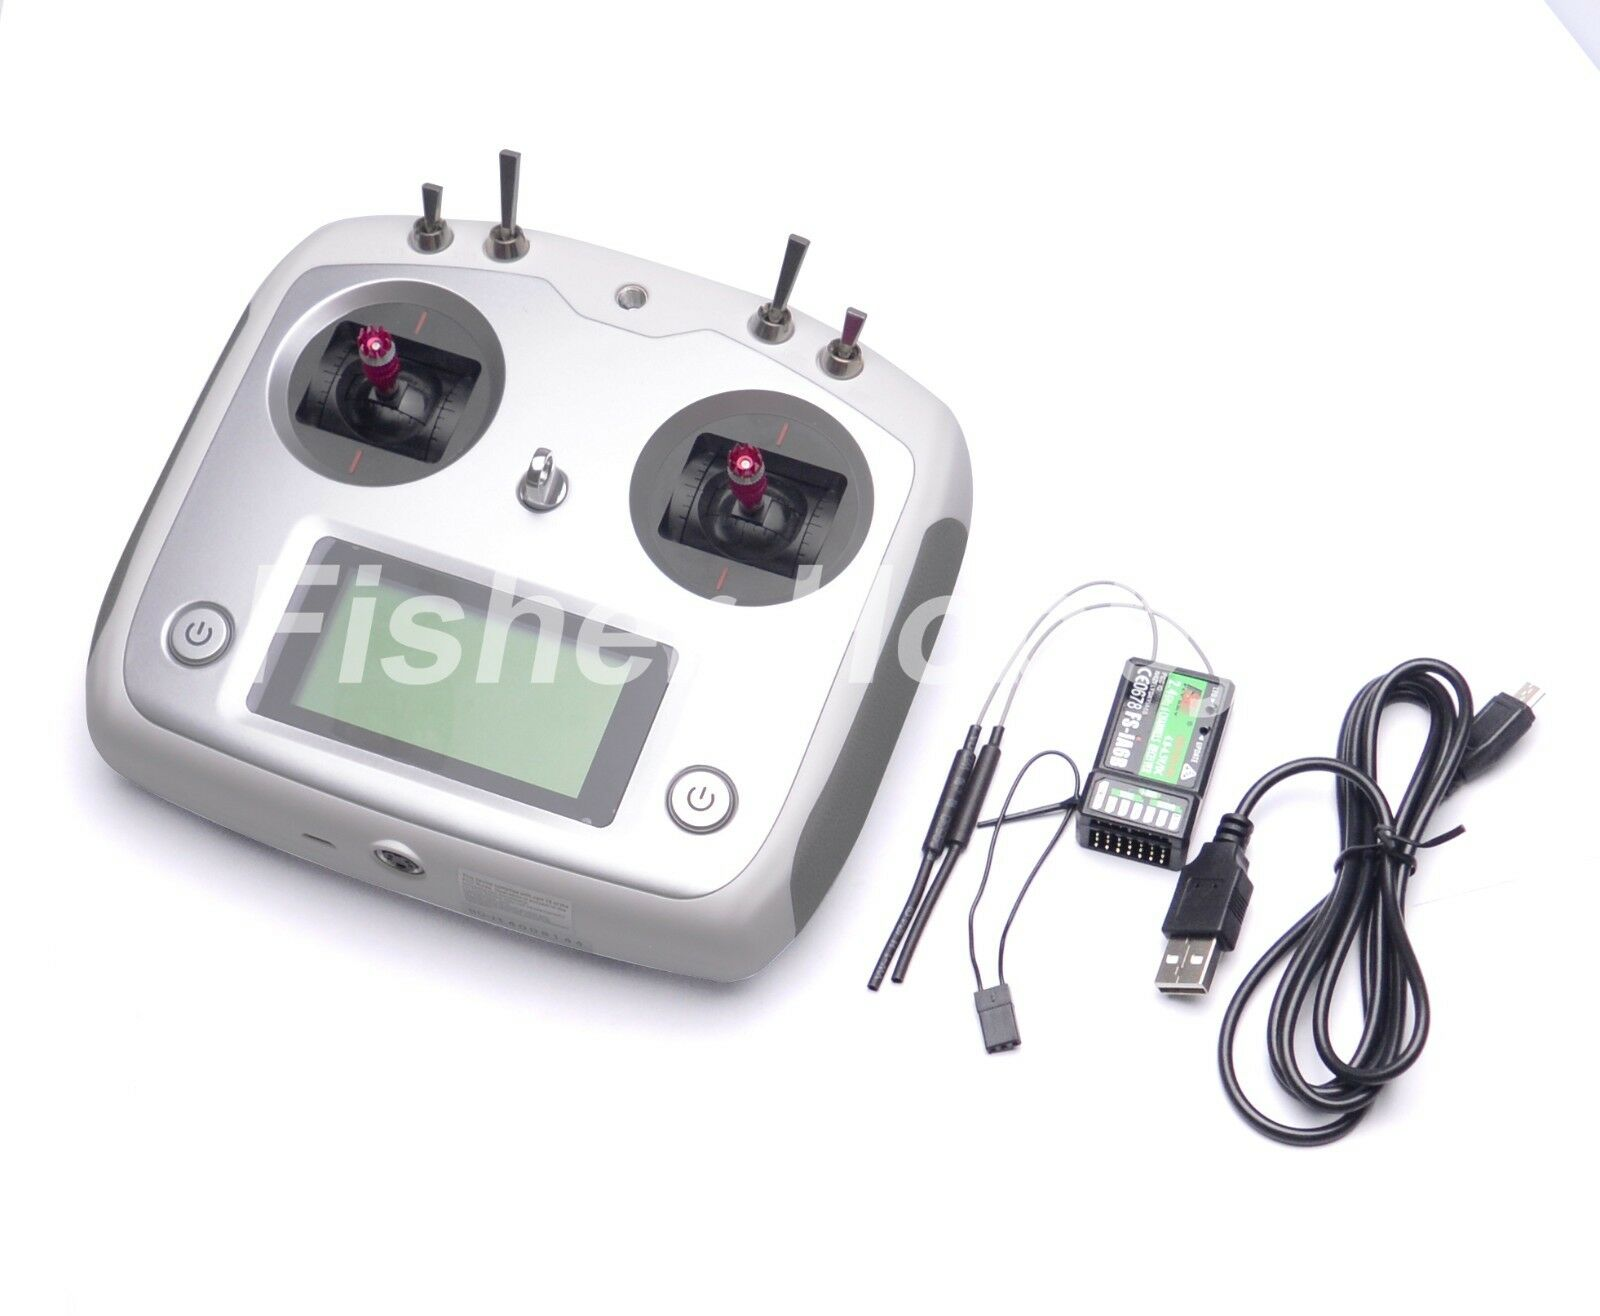 Fly sky 2.4G FS-i6s 10ch RC Transmitte with FS - iA6B Receiver For RC Quad drone